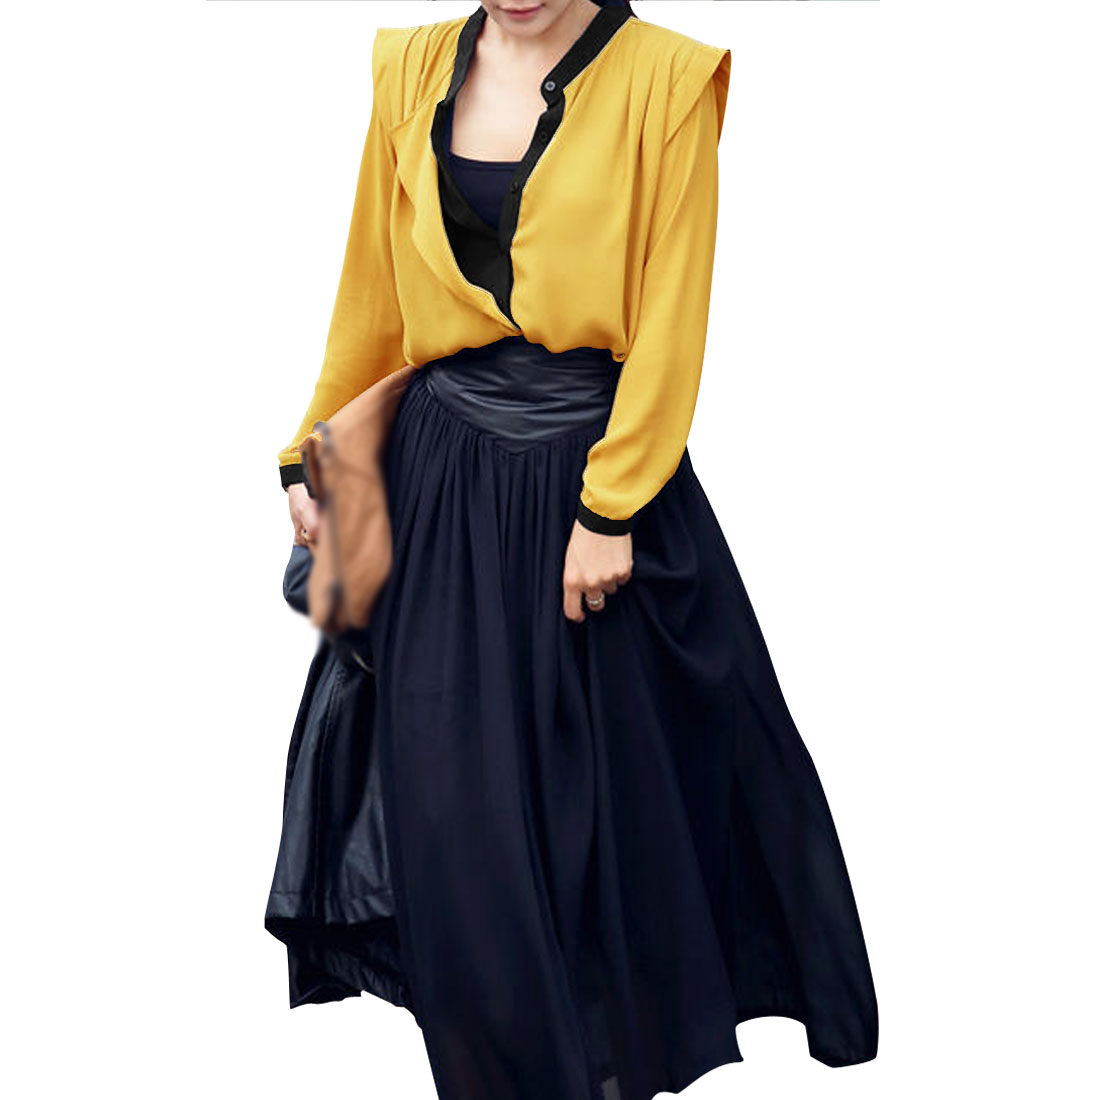 Women Yellow Button Closure Layered Shirts Long Sleeve Casual Shirt S